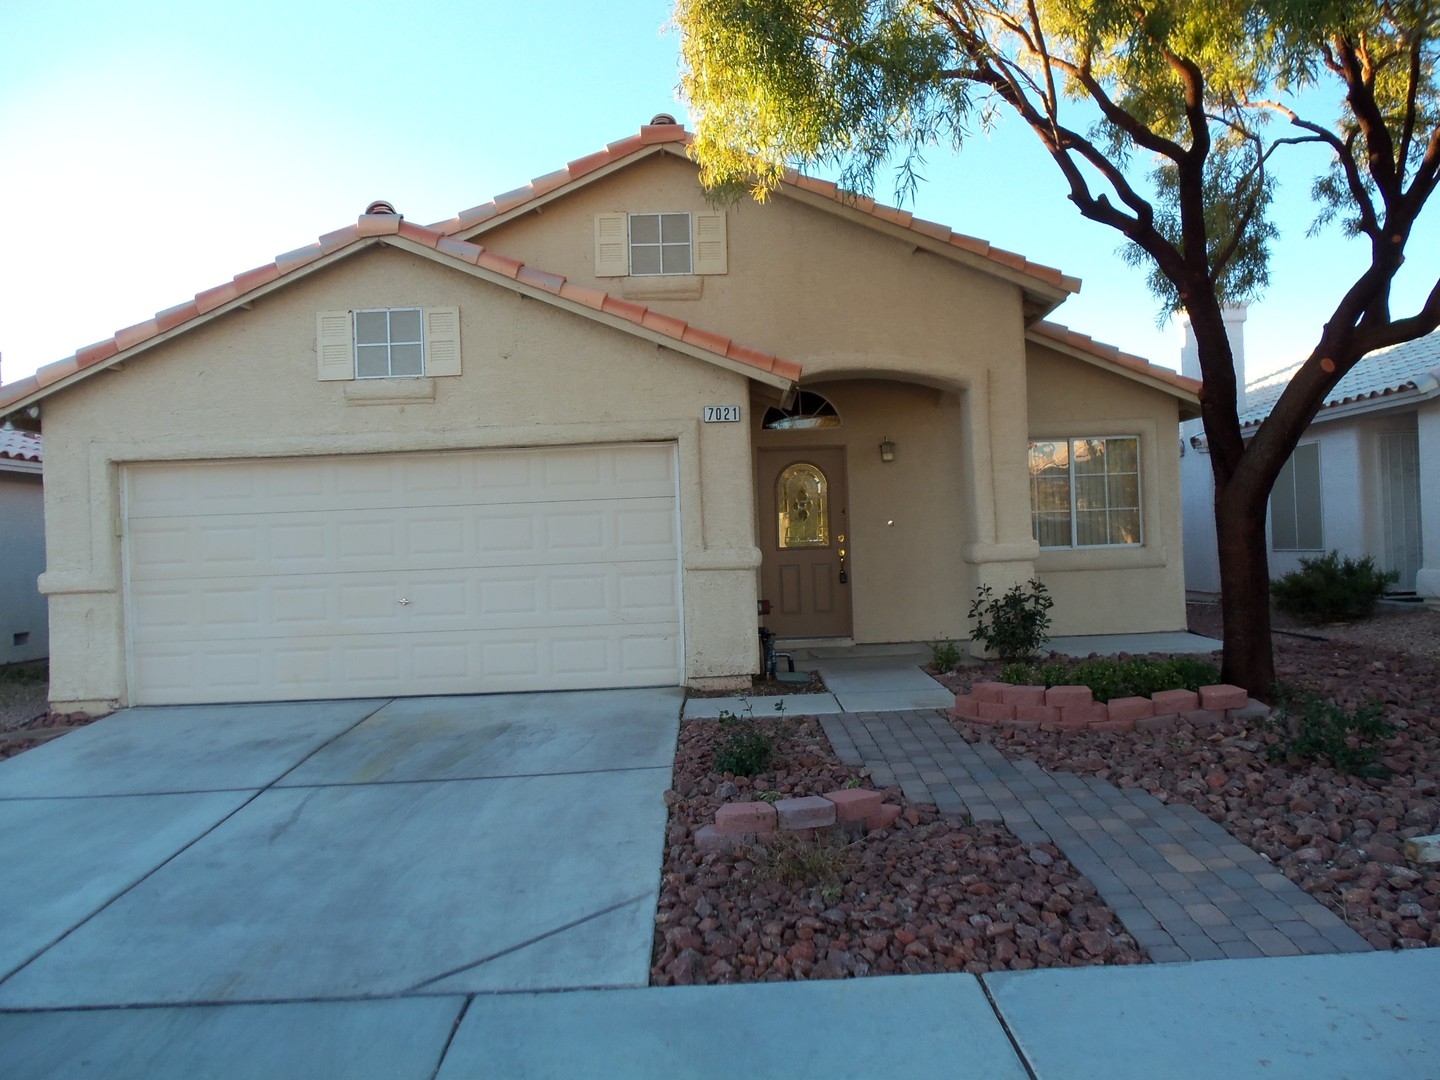 Apartments and Houses for Rent Near Me in Lone Mountain ...